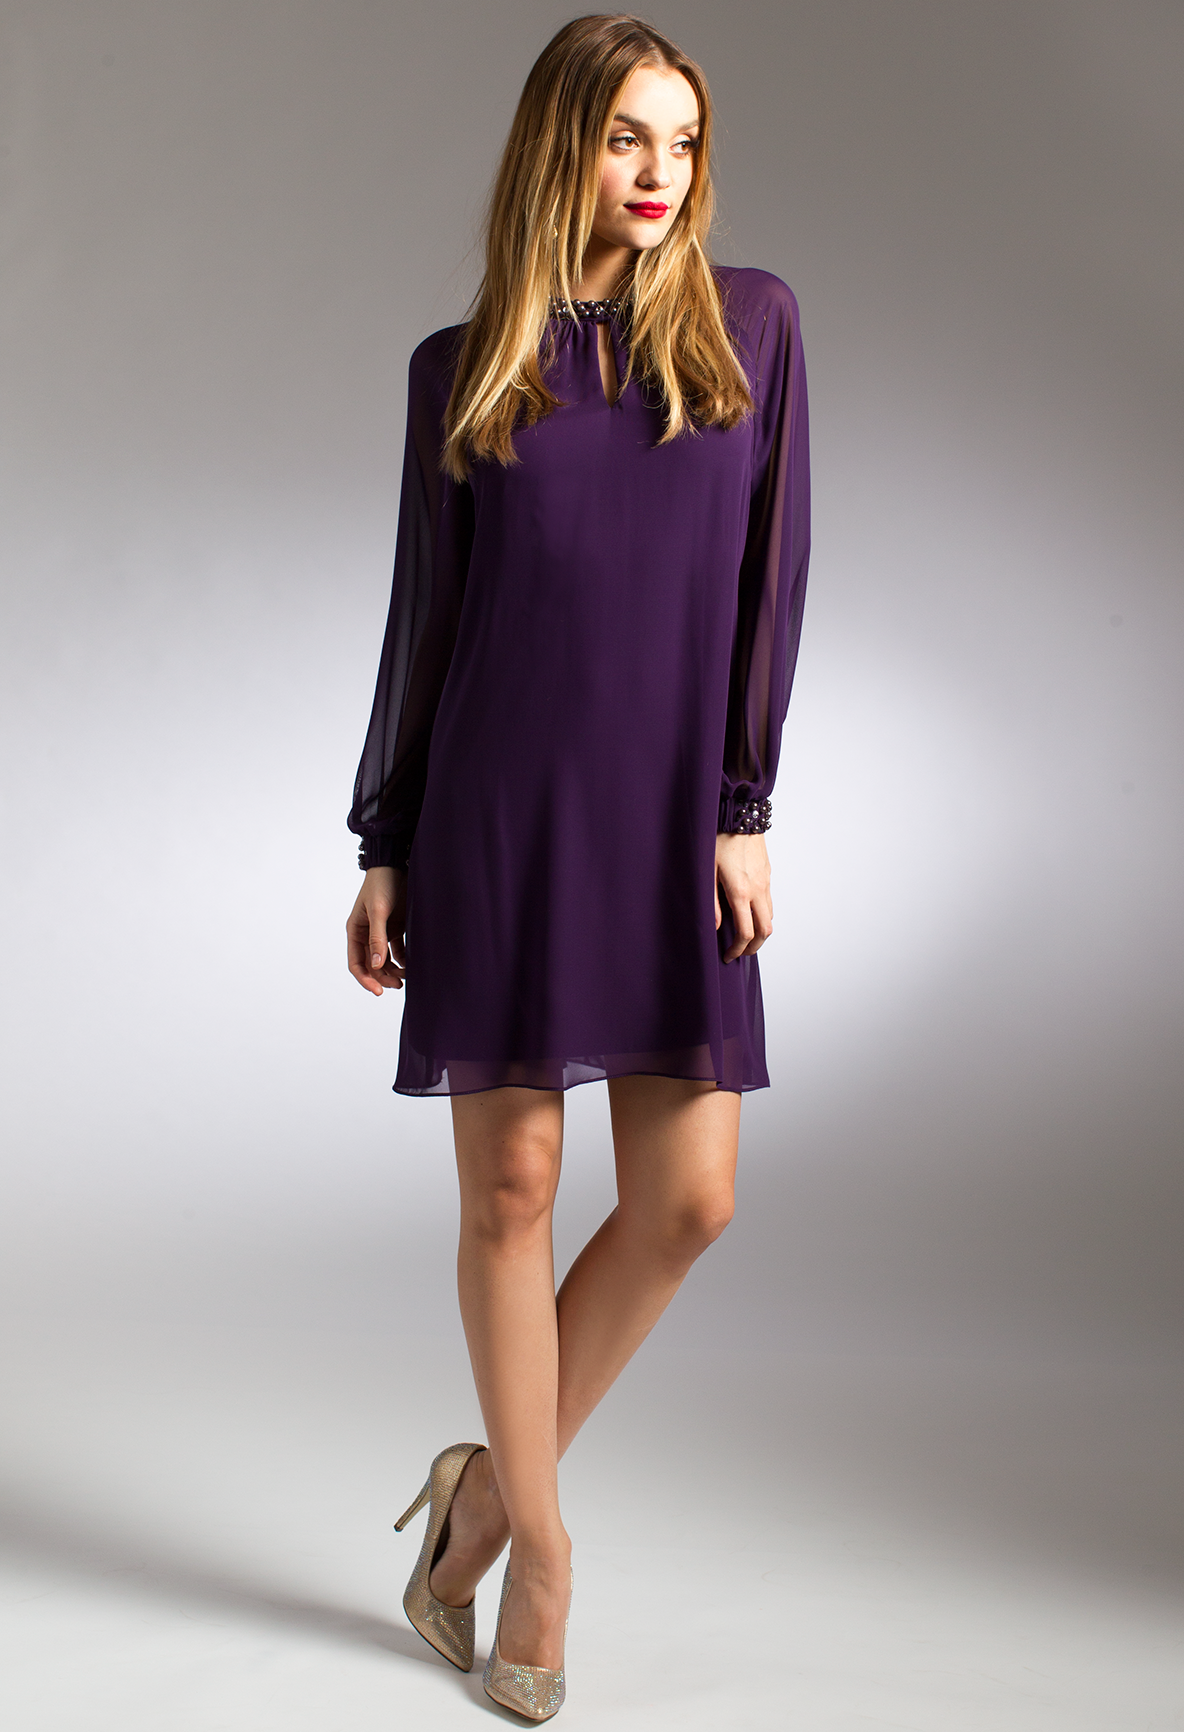 Shift dresses for wedding guests  Long sleeve Shift Dress with Pearl Trim camillelavie  PURPLE